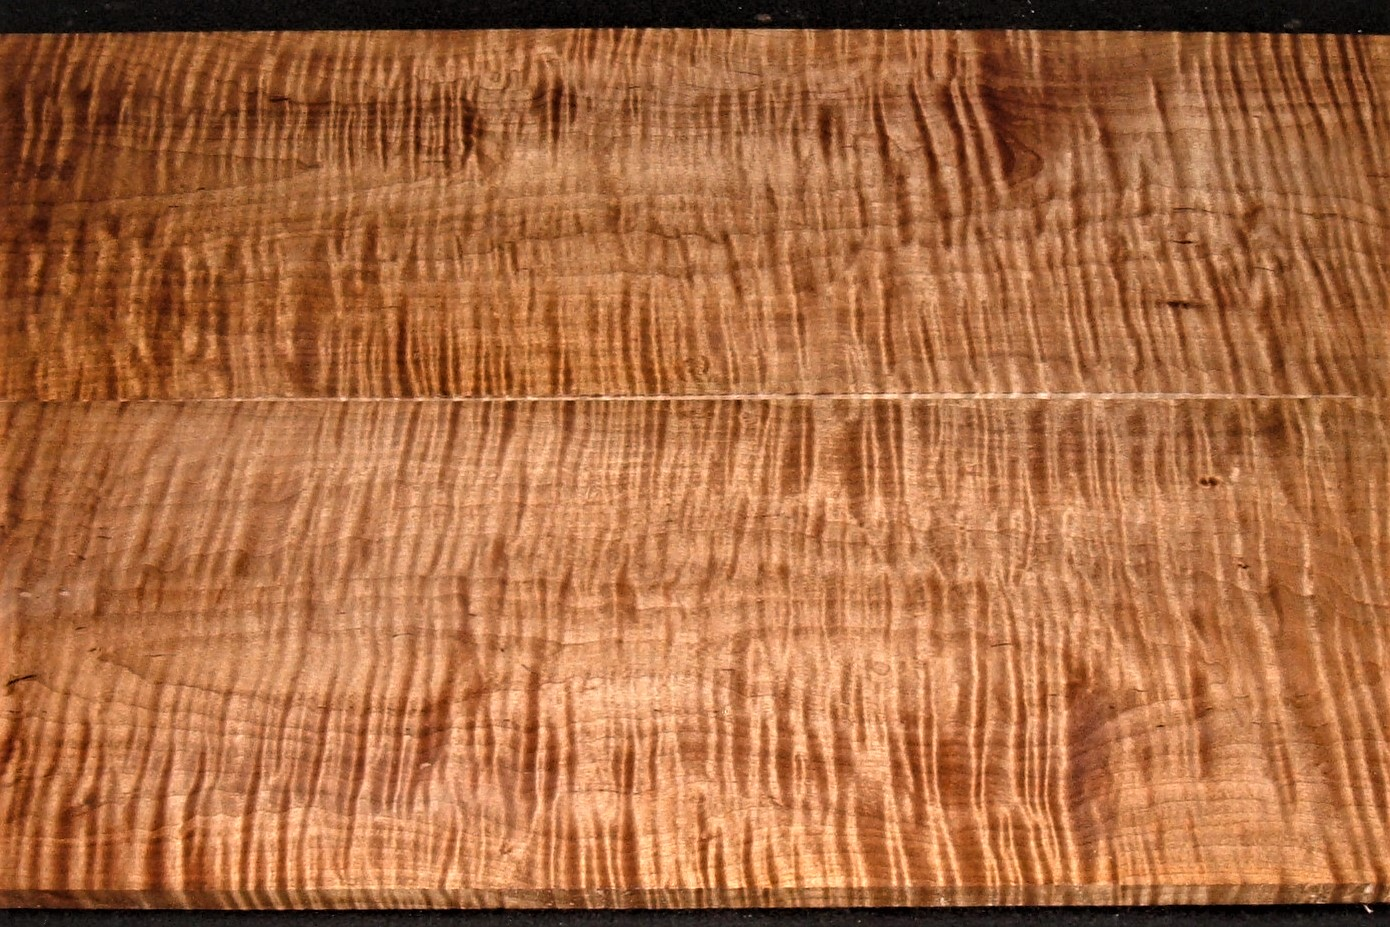 RBM2012-3JJ, 1/2x7-3/4x23, 1/2x7-3/4x23, Curly Tiger Maple, Roasted Book Match